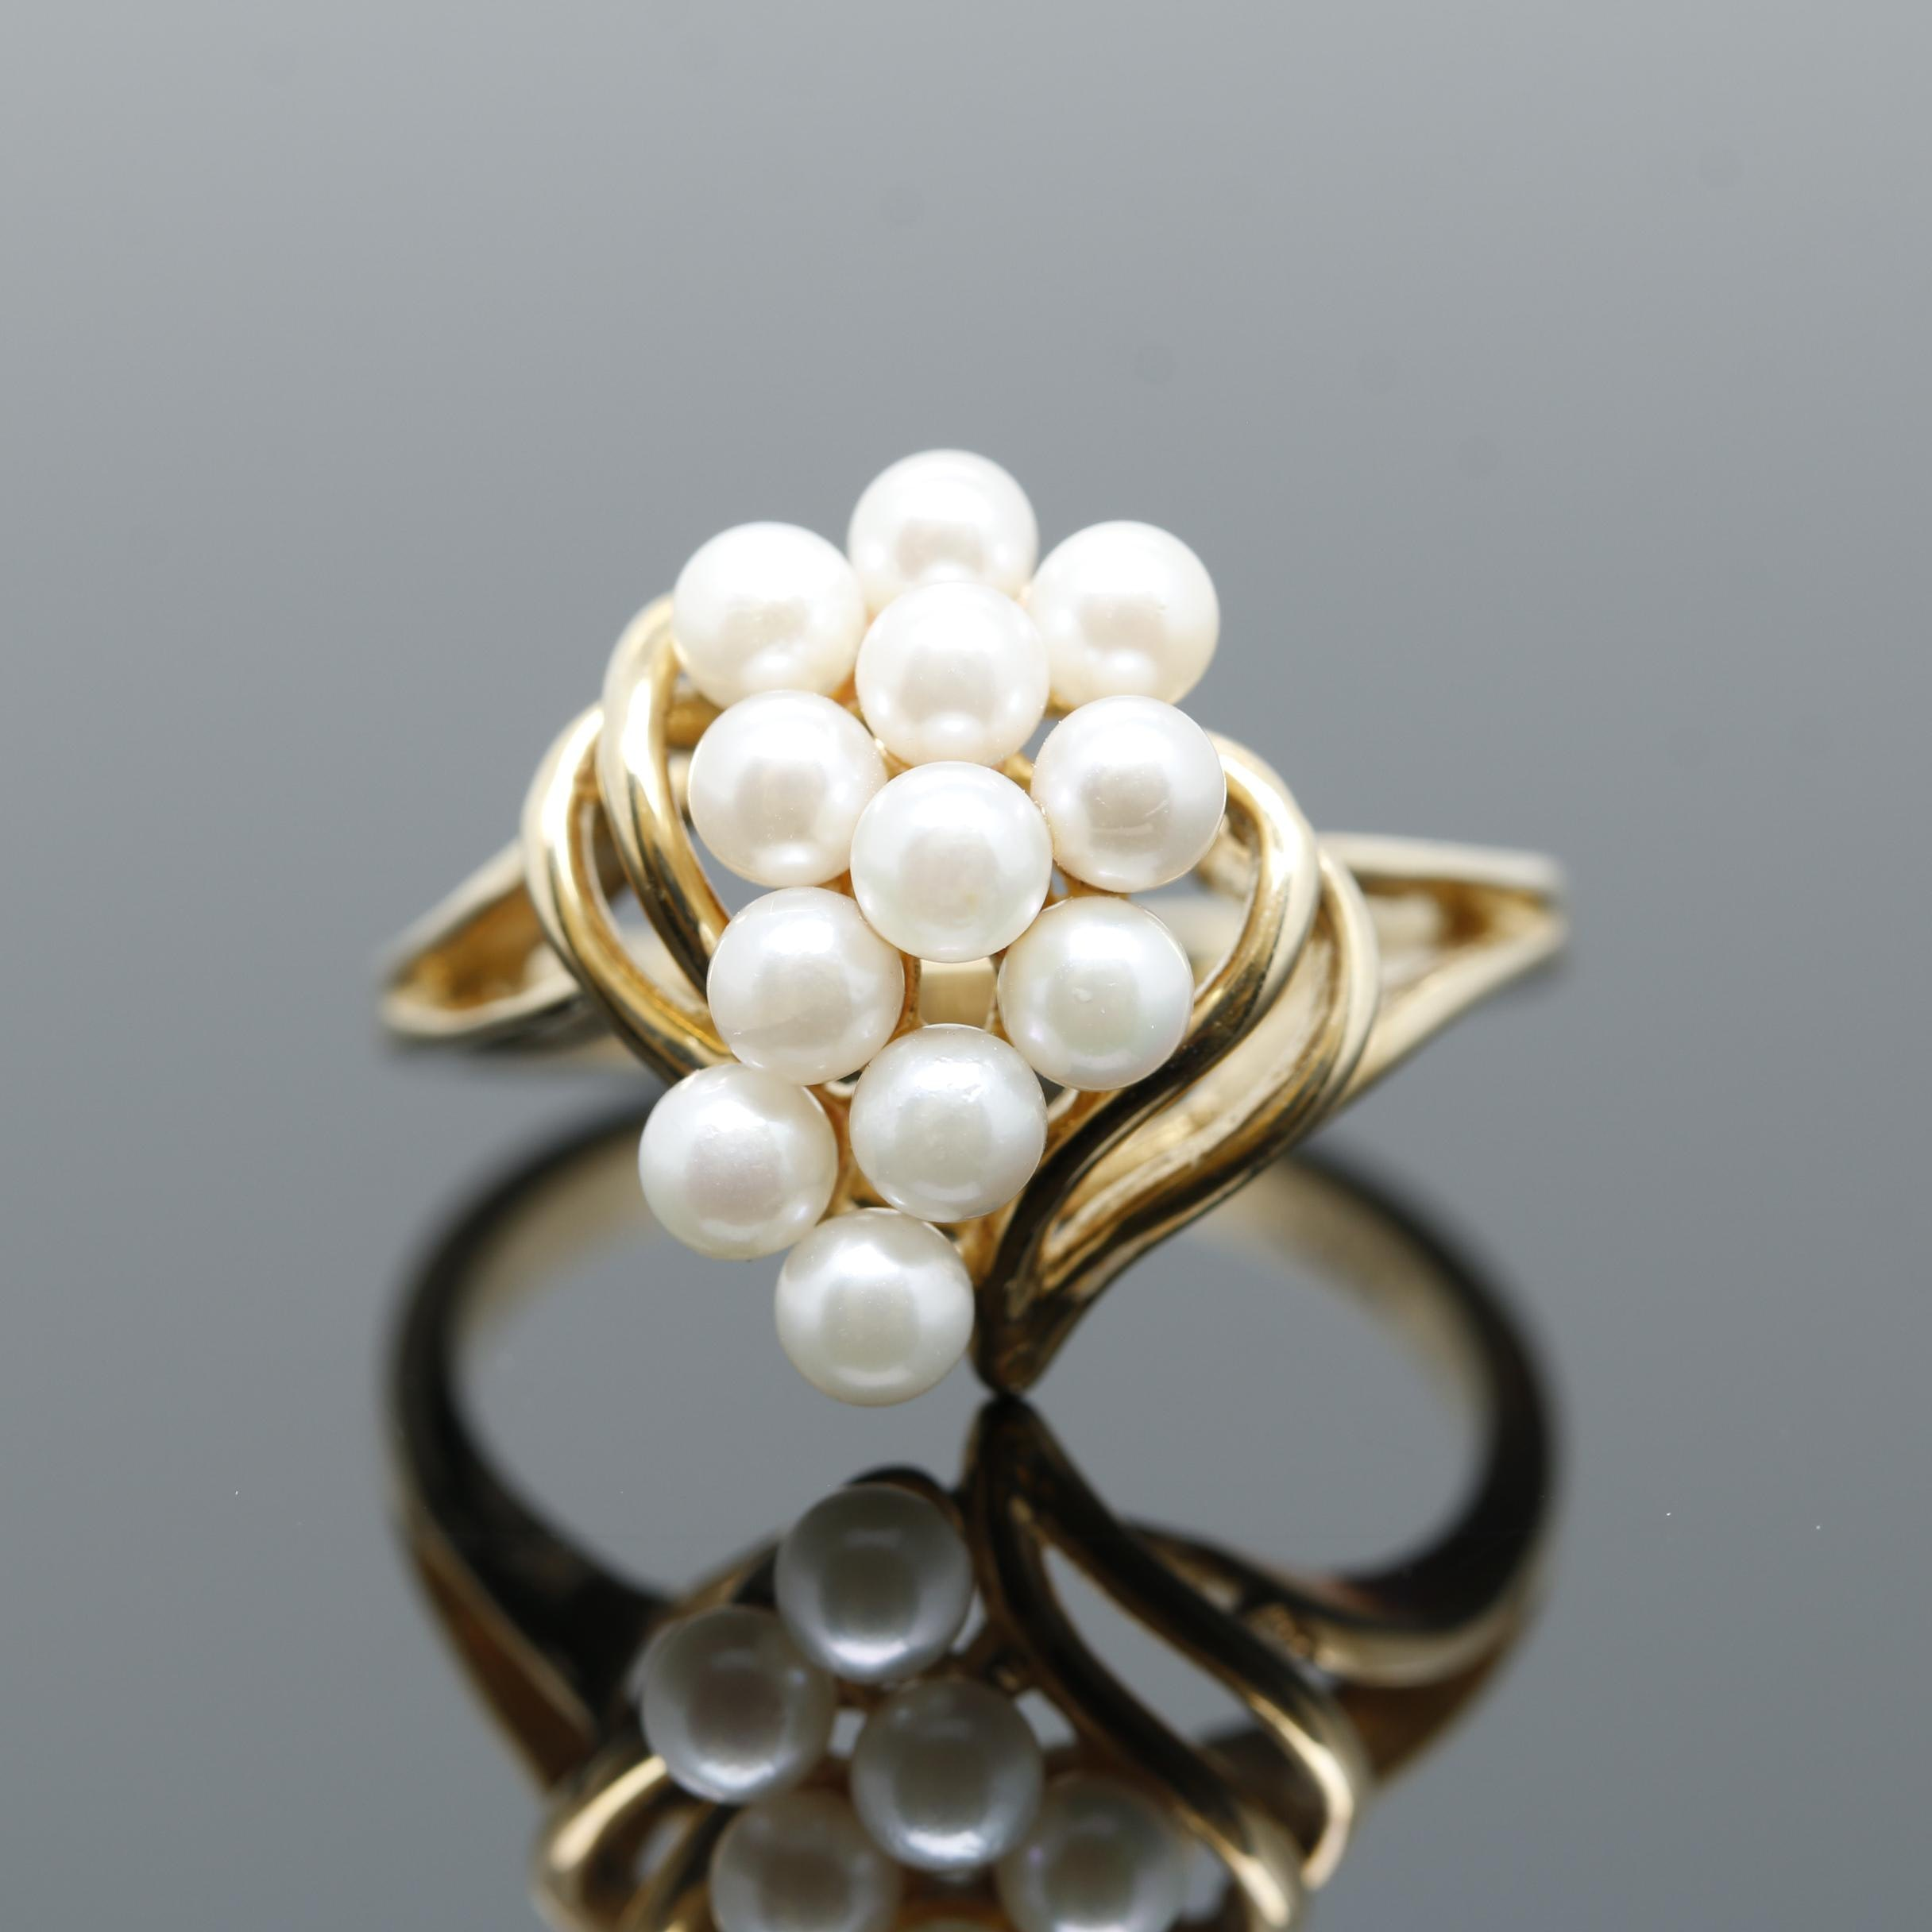 10K Yellow Gold Cultured Pearl Cluster Ring